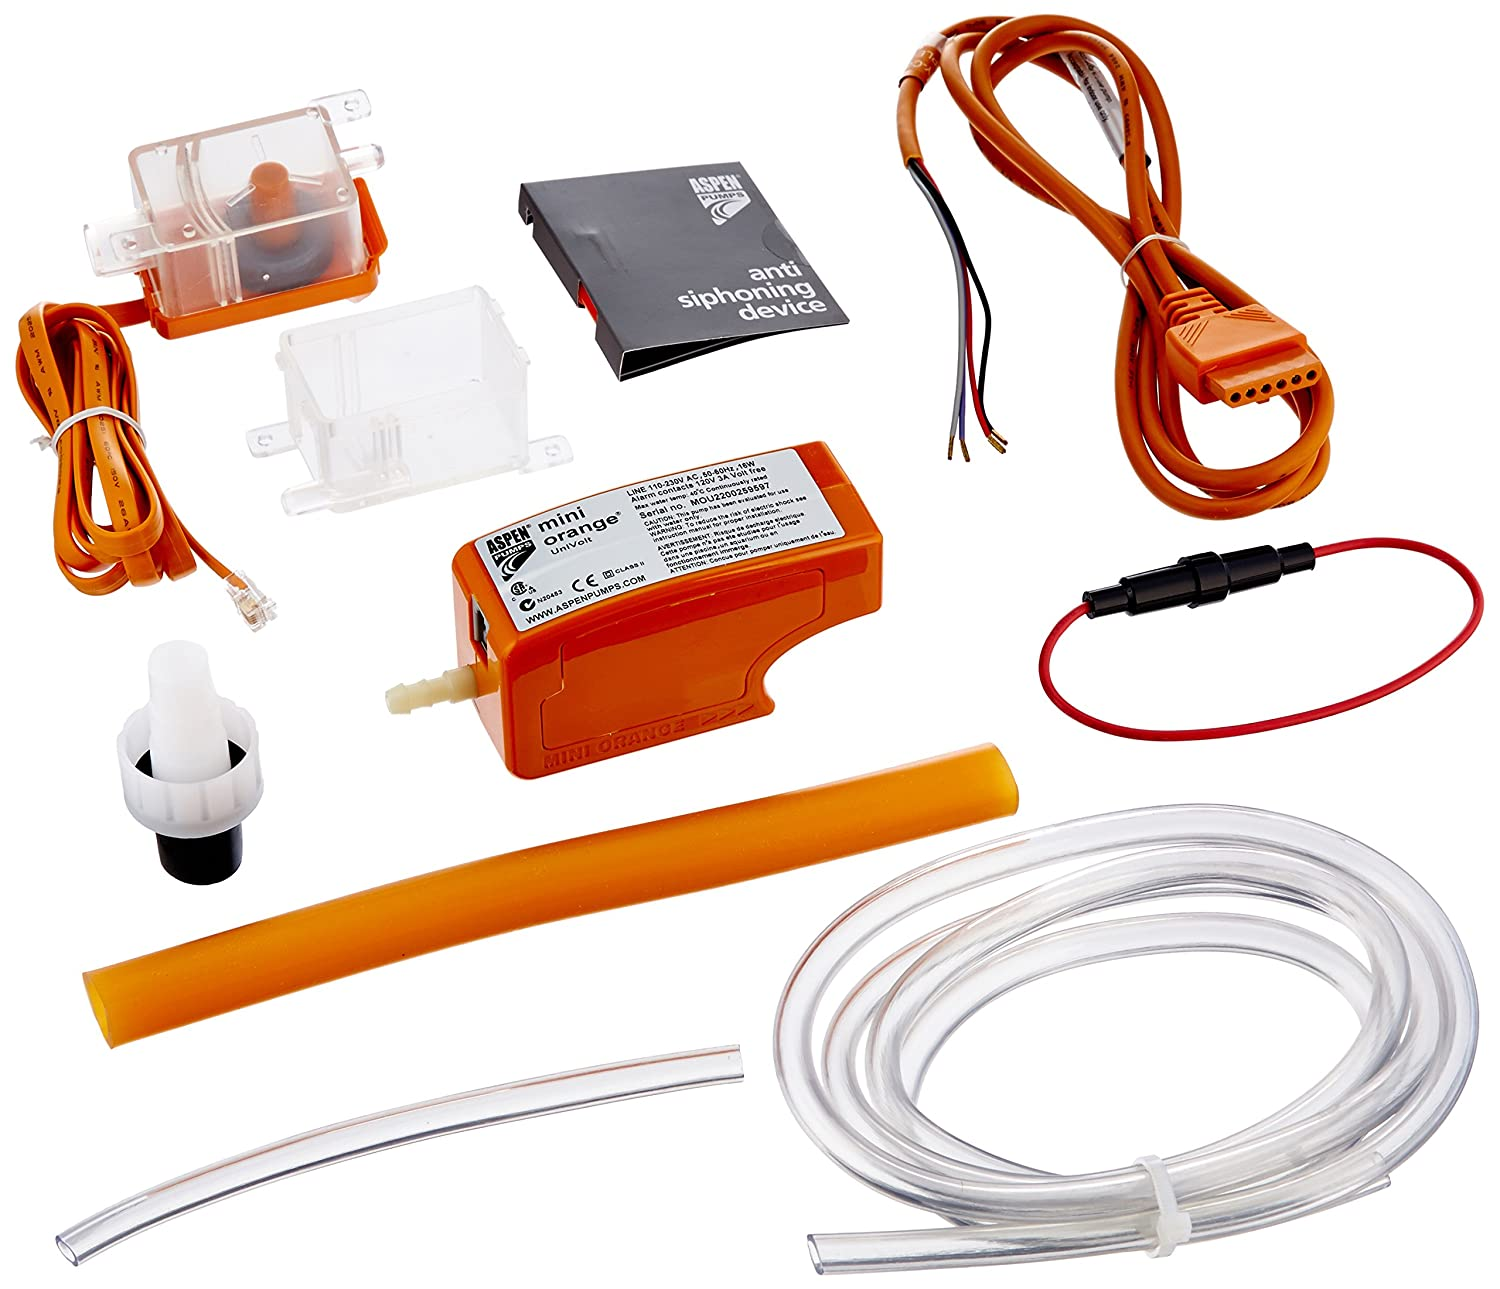 81ok0tXfJrL._SL1500_ amazon com rectorseal 83909 aspen mini orange 100 250v condensate aspen pumps mini orange wiring diagram at edmiracle.co